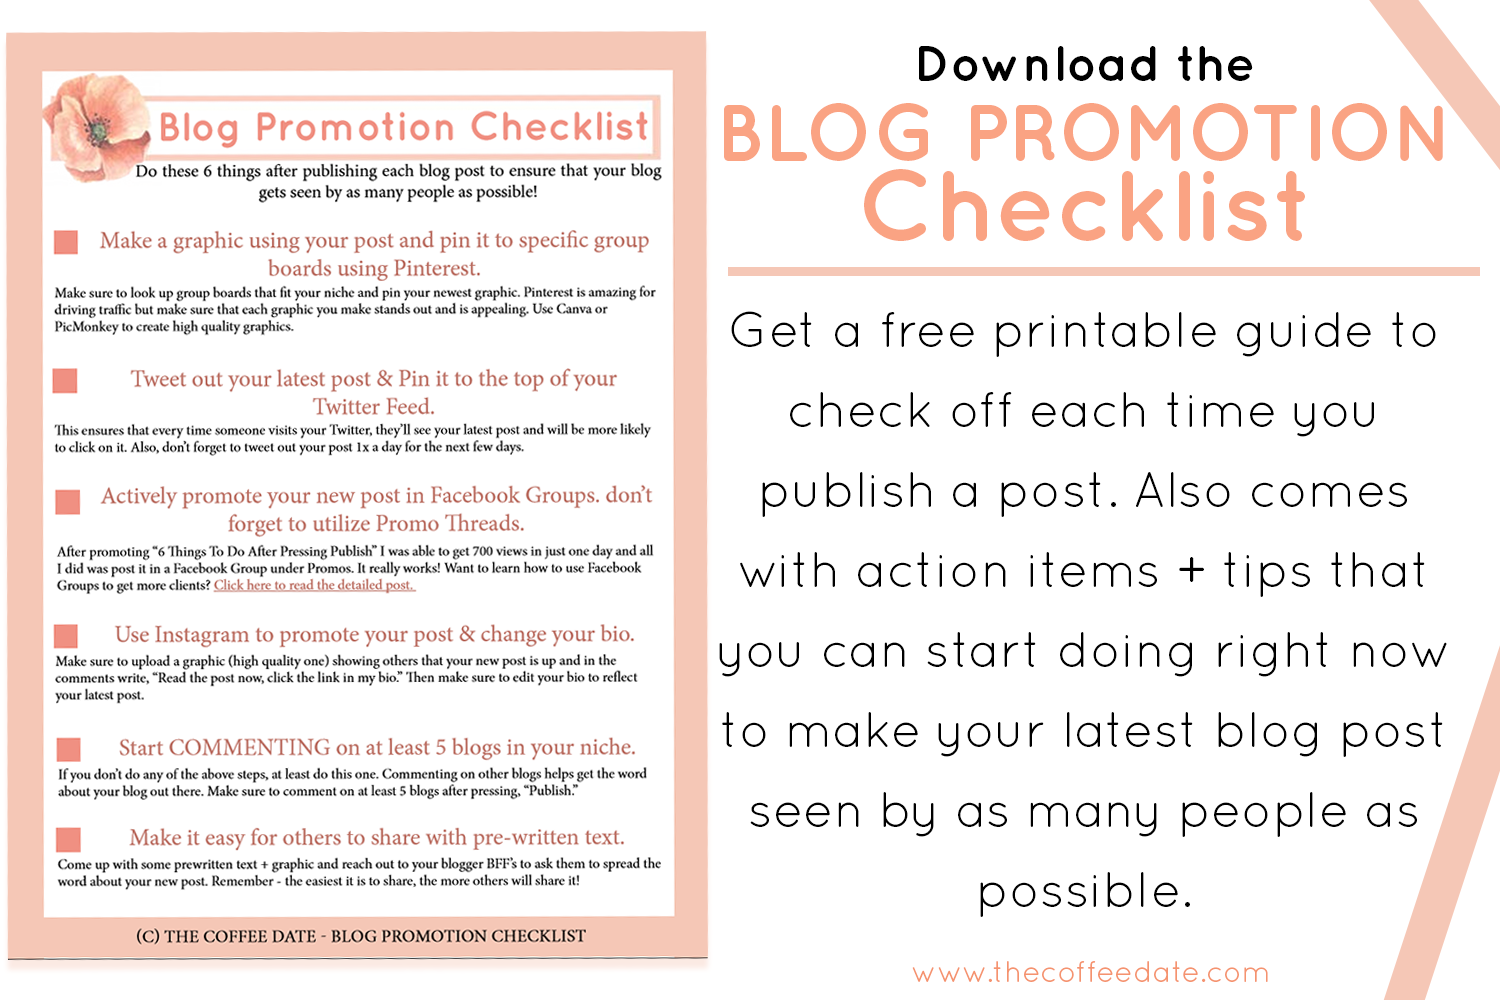 Click the photo to download the BLOG PROMOTION CHECKLIST.